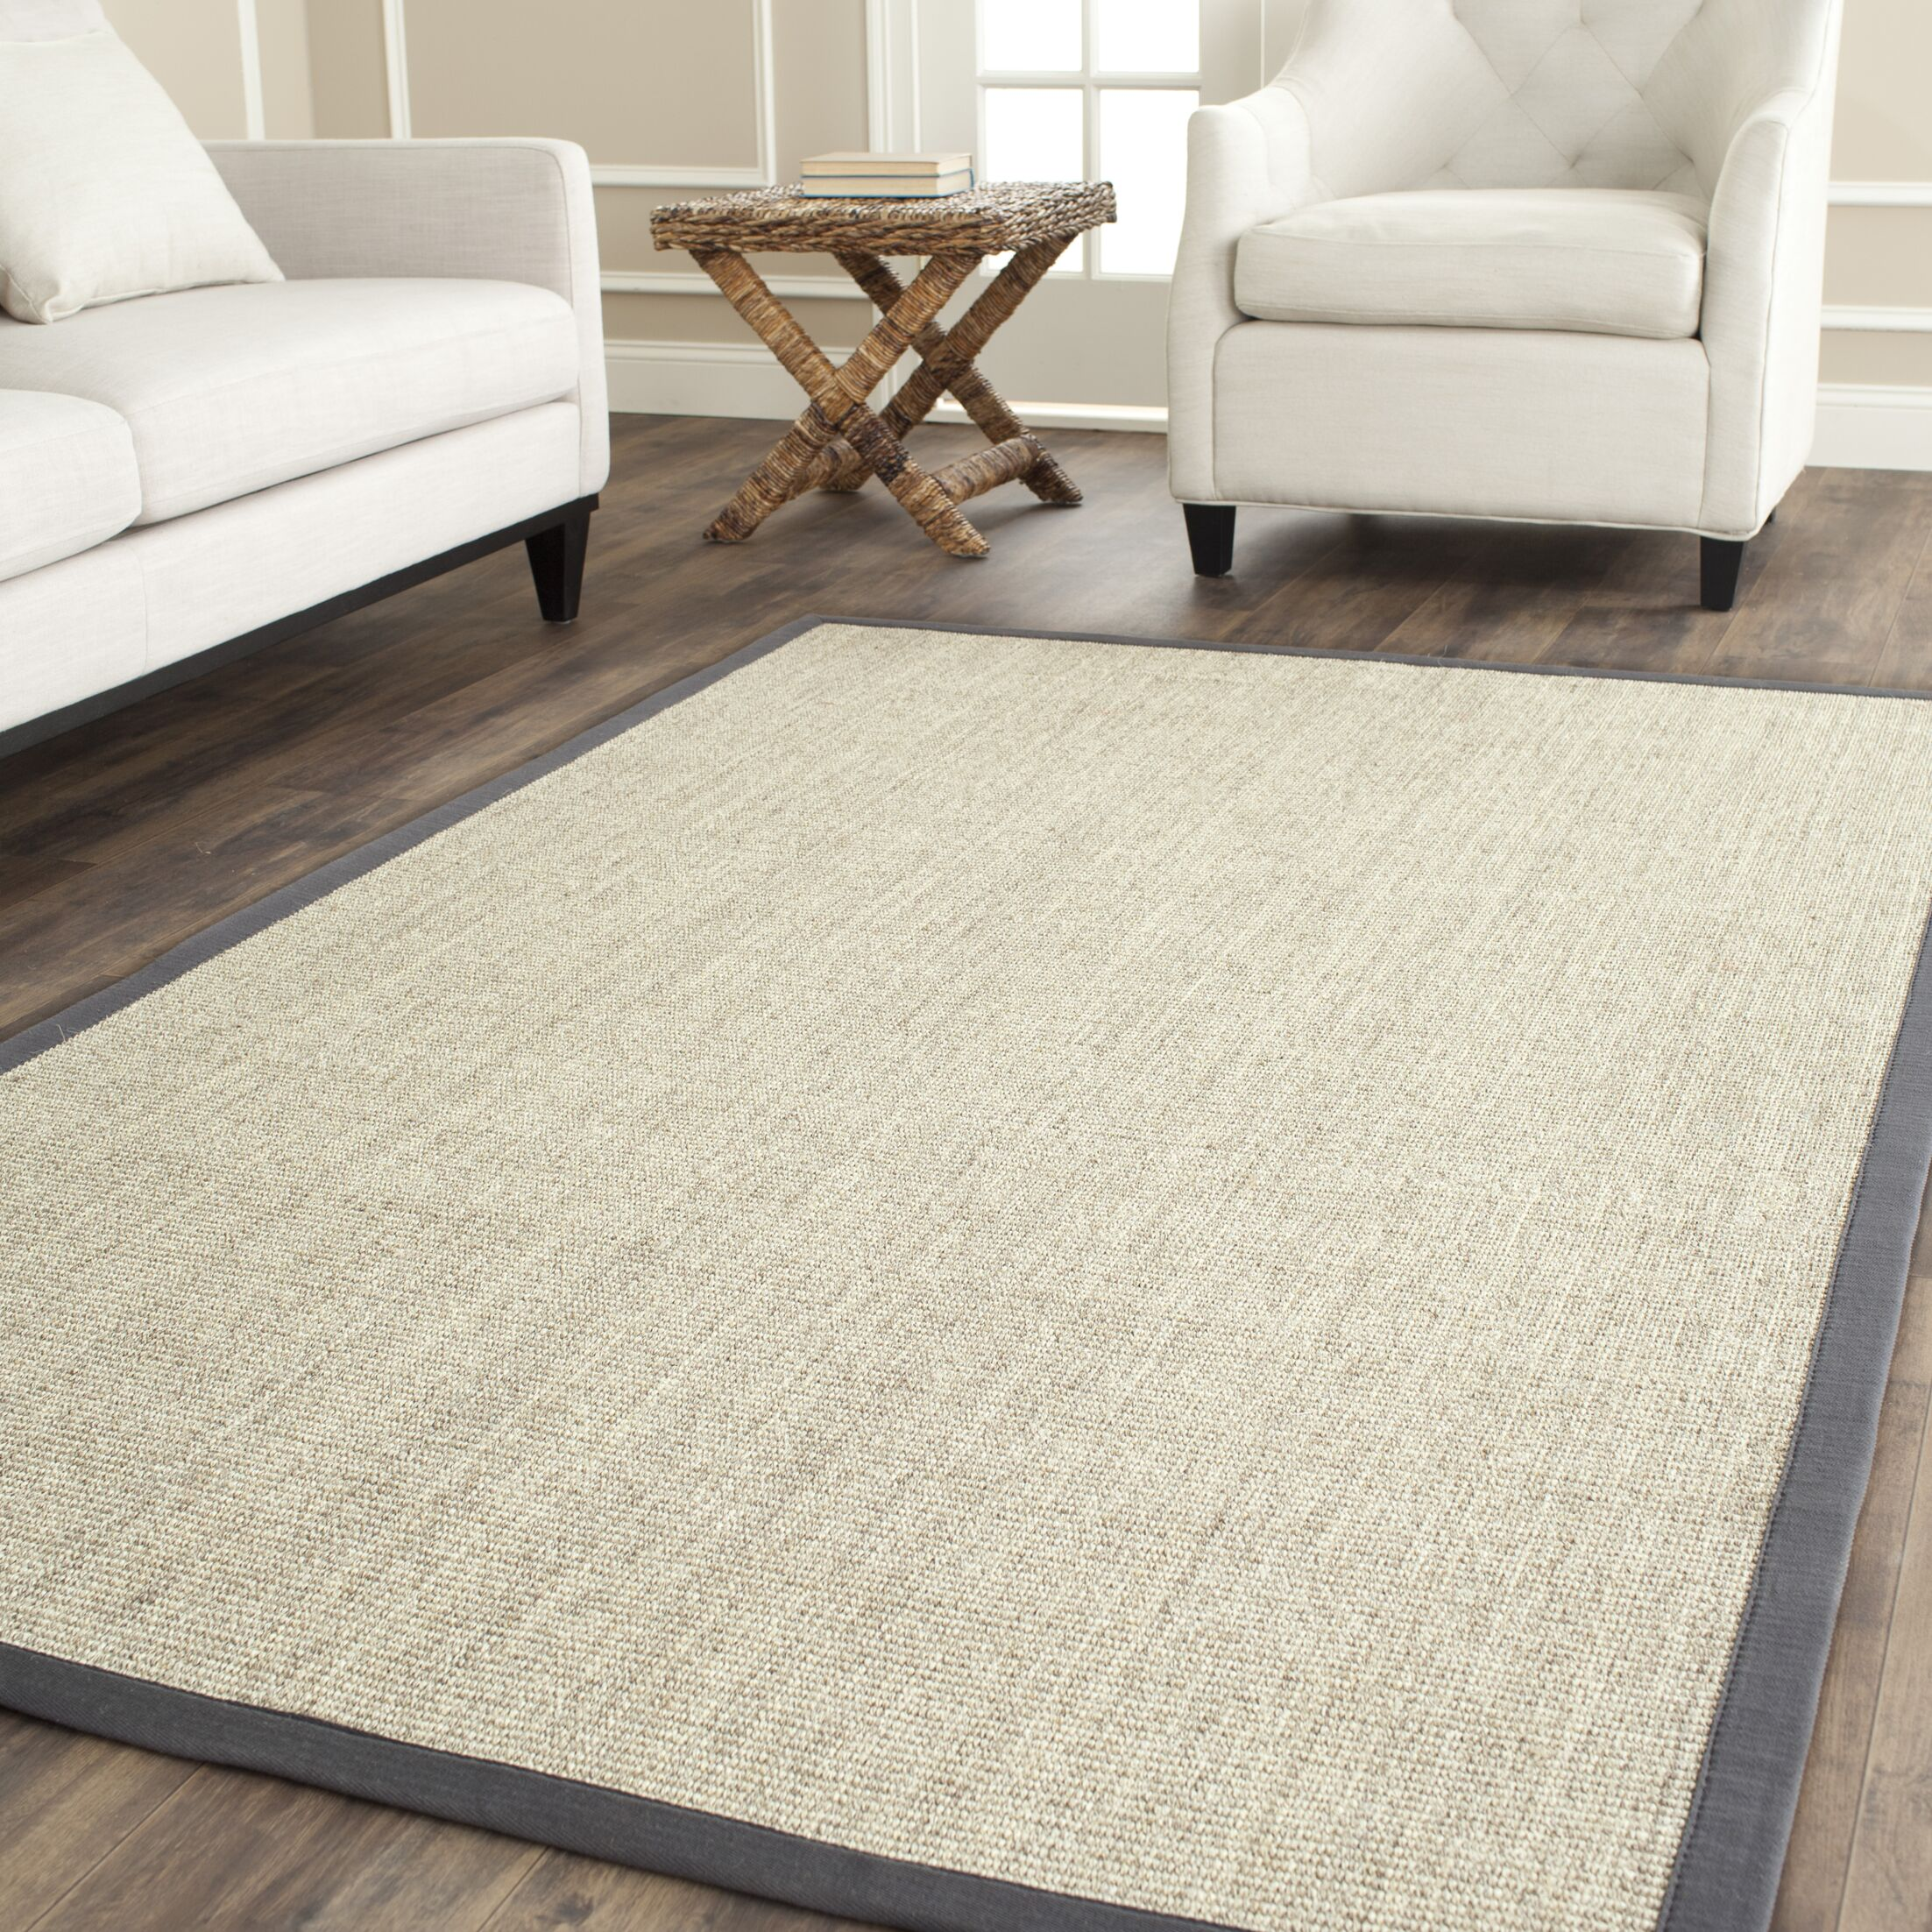 Liviana Beige Area Rug Rug Size: Rectangle 6' x 9'